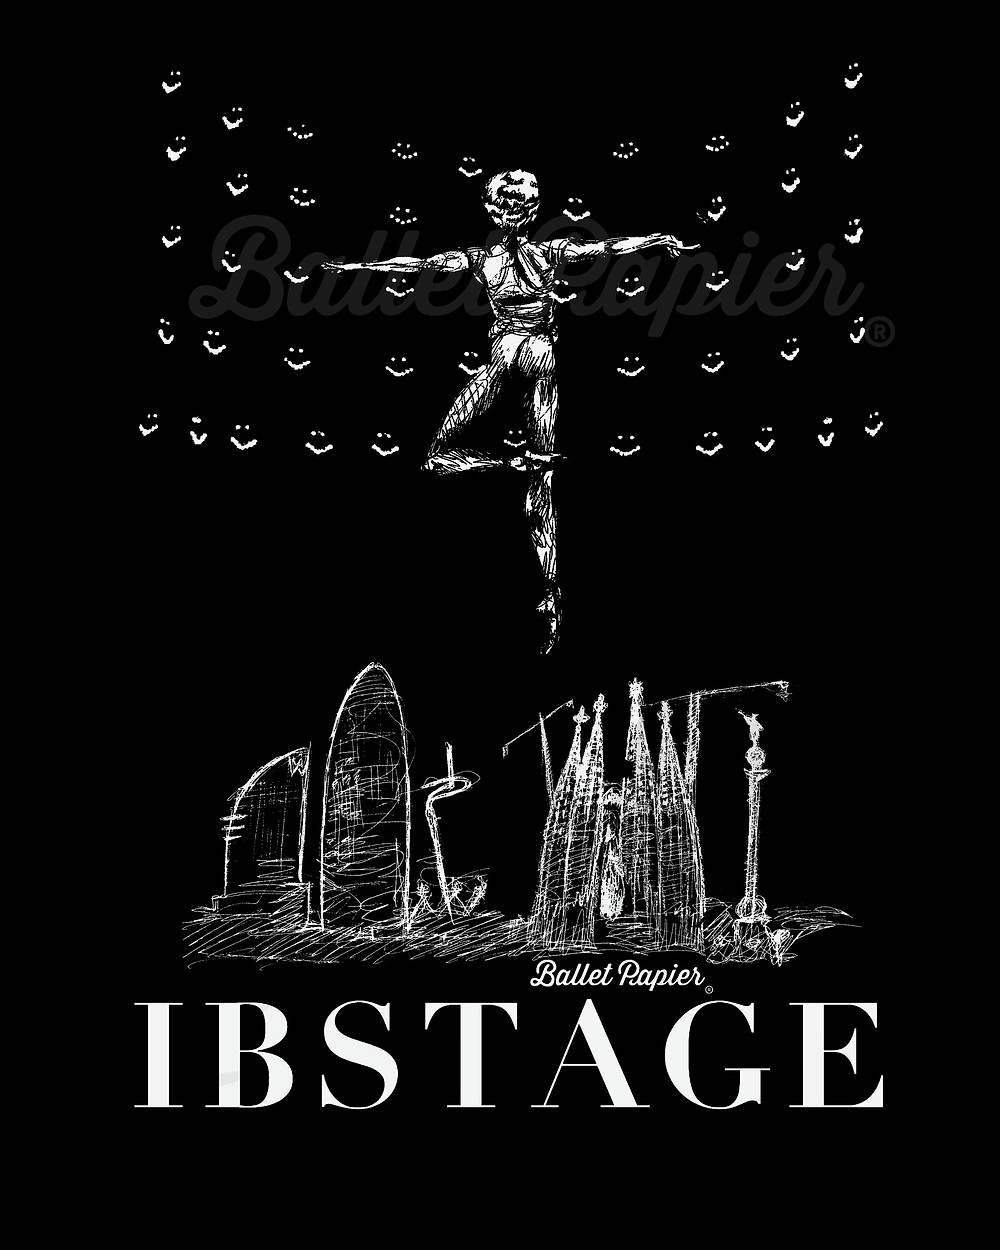 Ballet Papier design for IBStage